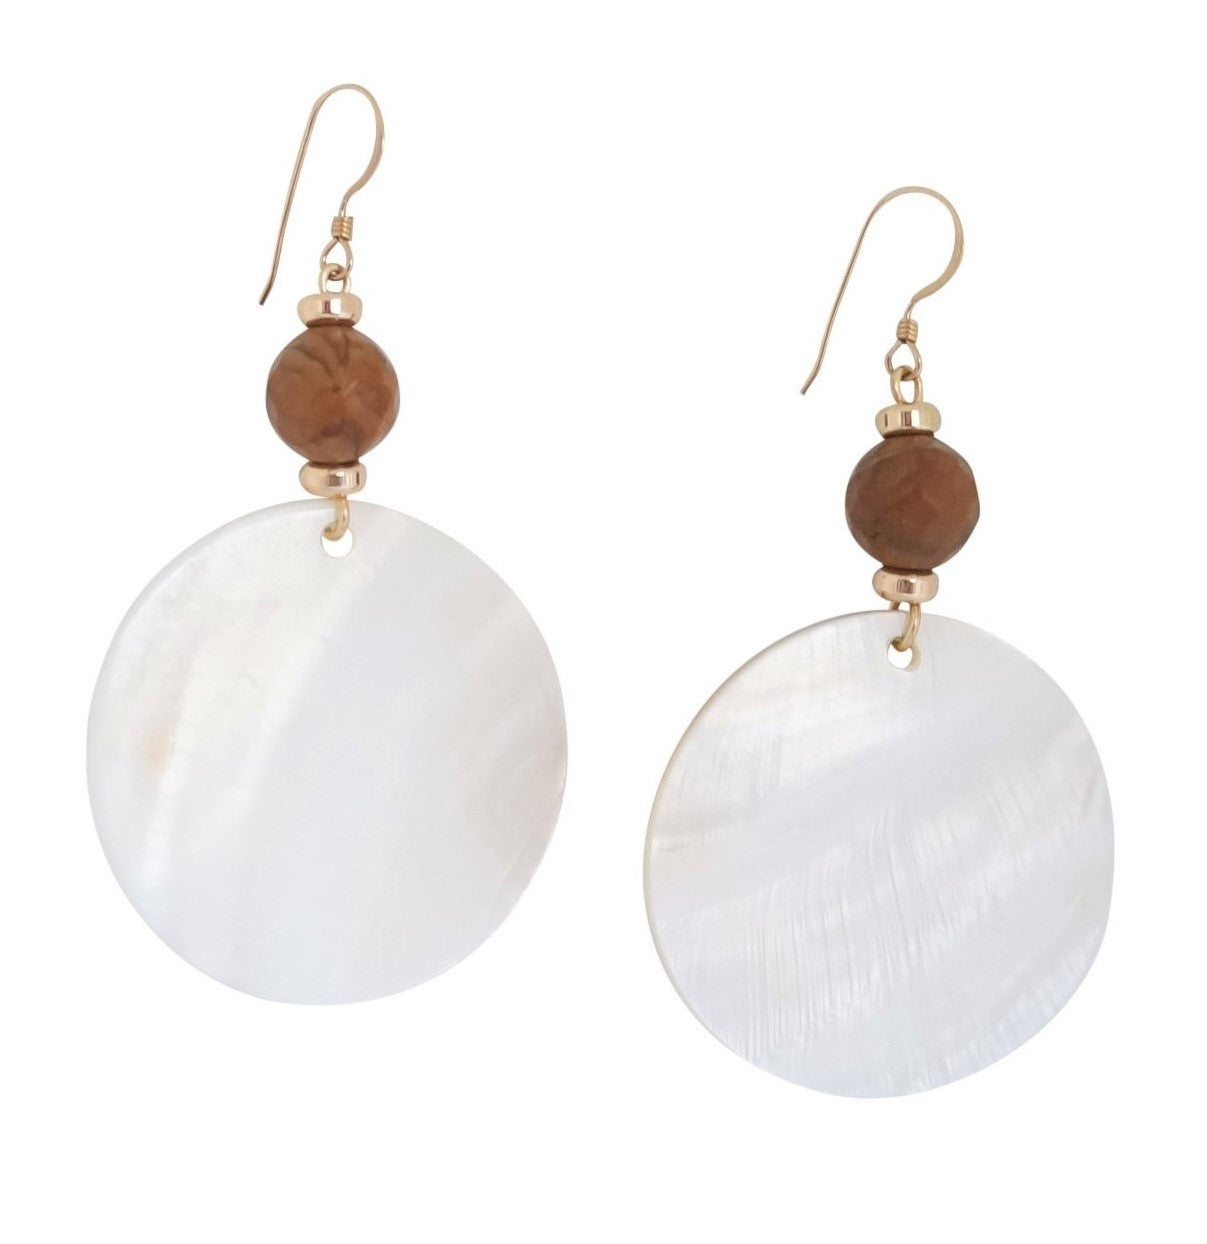 Element Earrings - Carolyn Hearn Designs